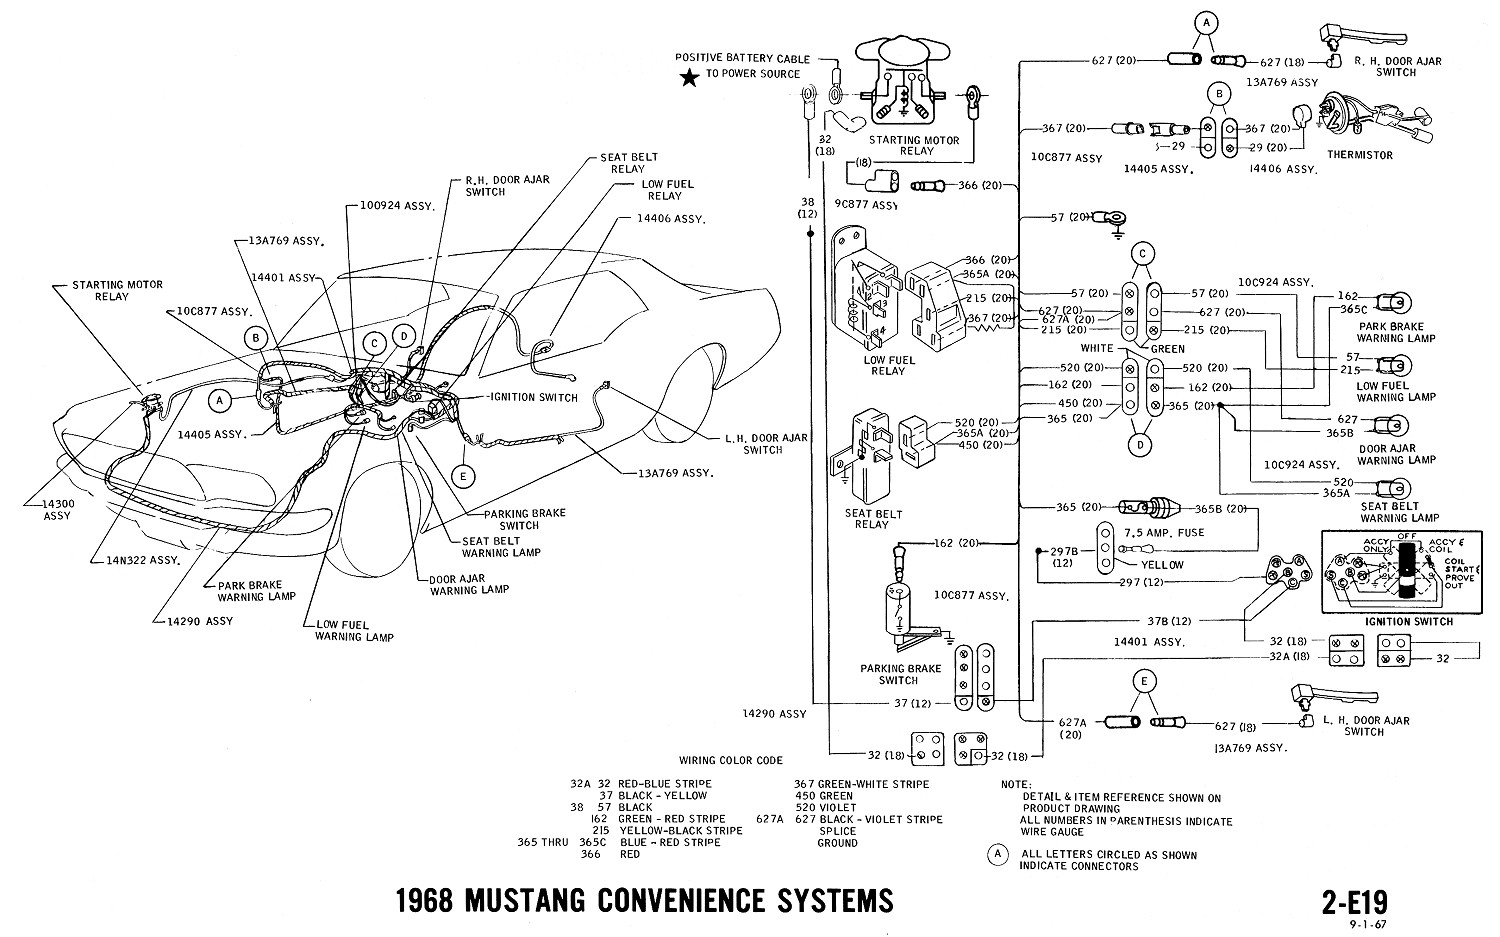 hight resolution of 1968 mustang wiring diagrams and vacuum schematics average joe restoration 1969 gto headlight wiring diagram 1970